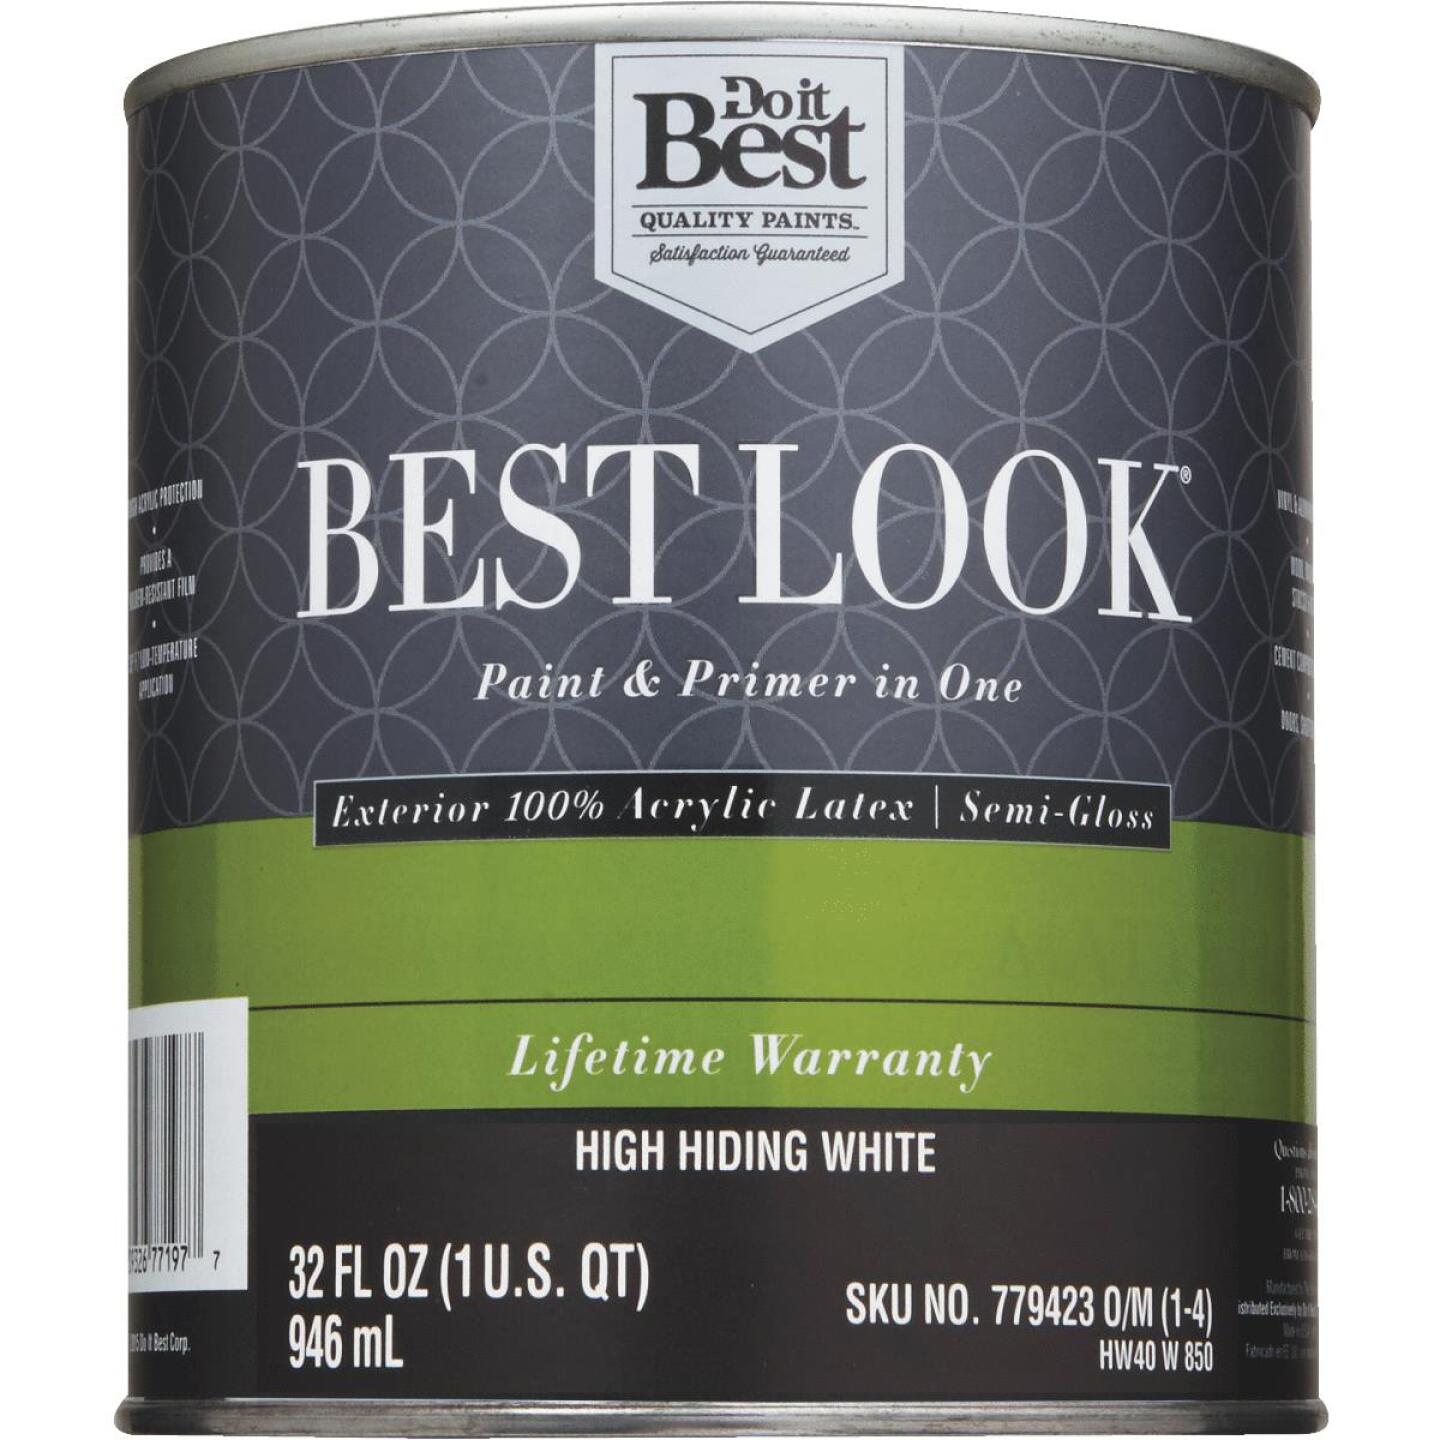 Best Look 100% Acrylic Latex Paint & Primer In One Semi-Gloss Exterior House Paint, High Hiding White, 1 Qt. Image 2